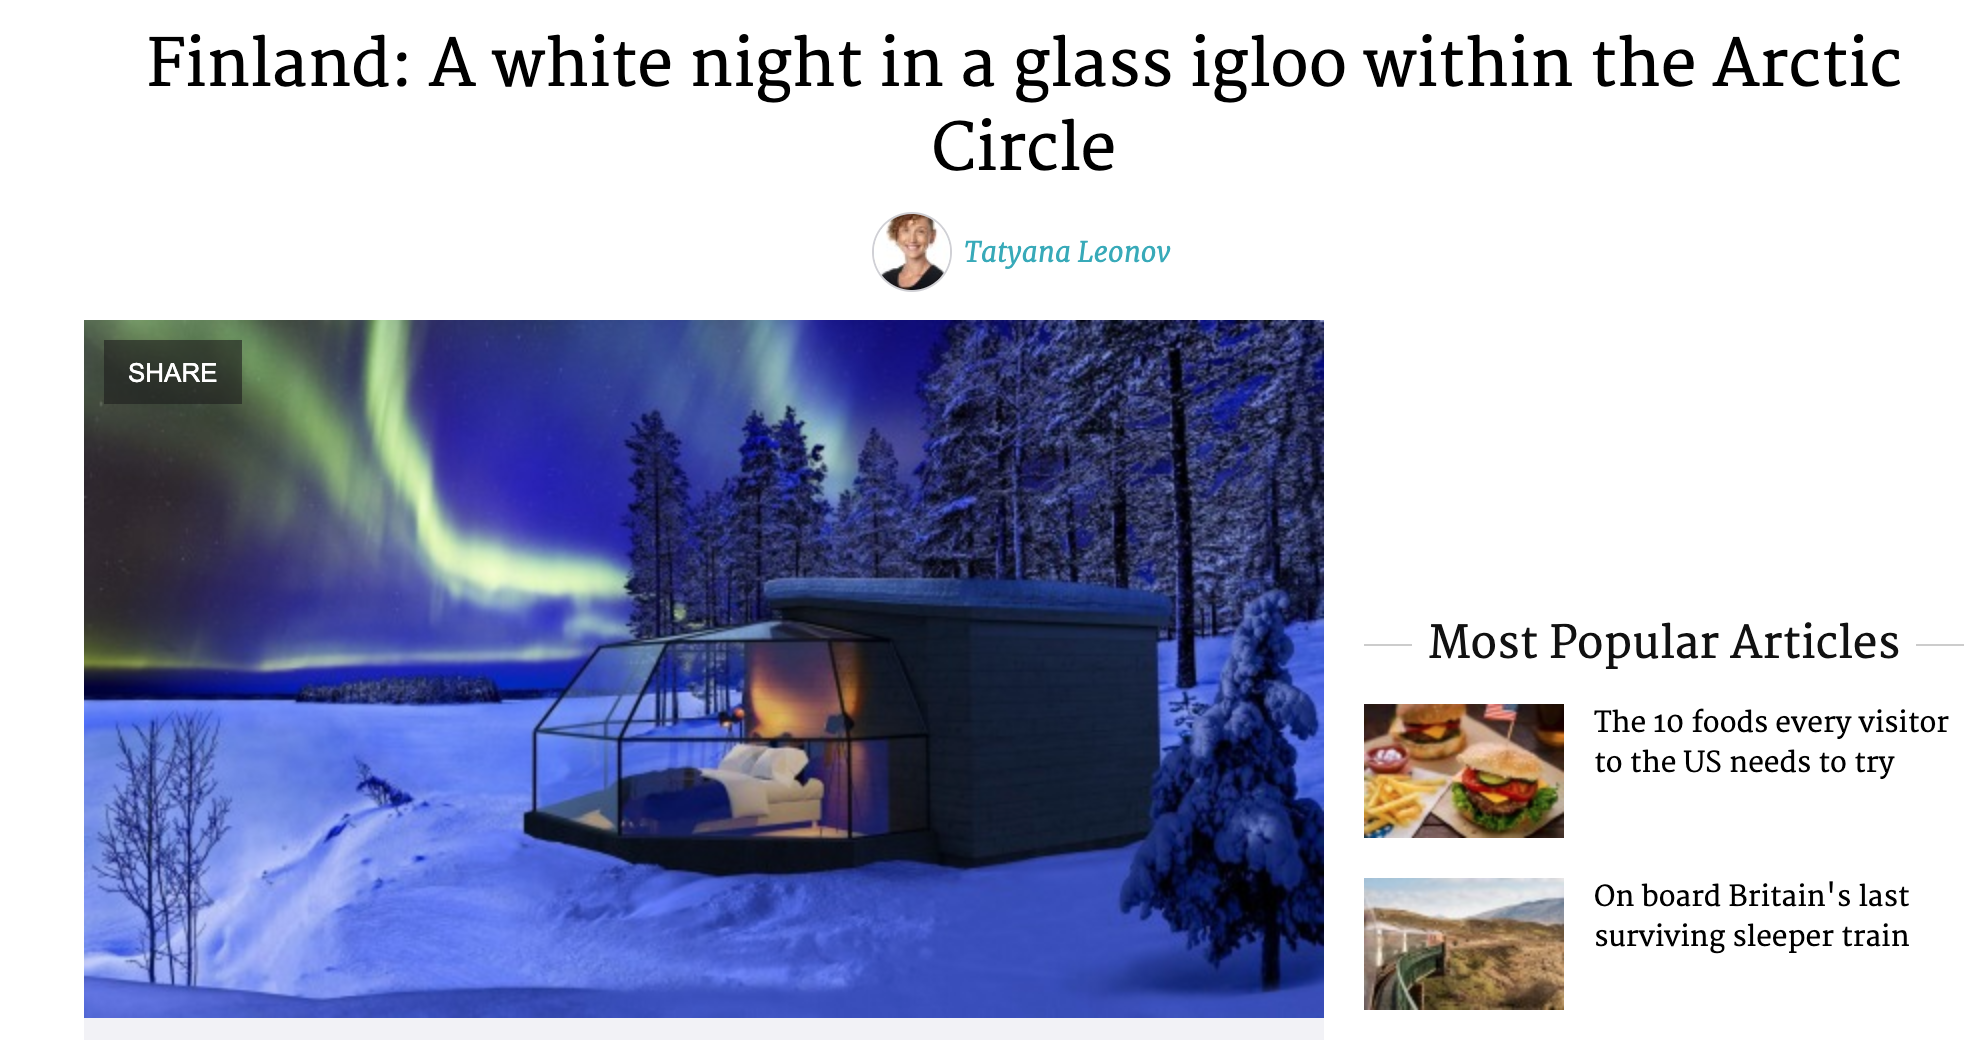 A white night in a glass igloo